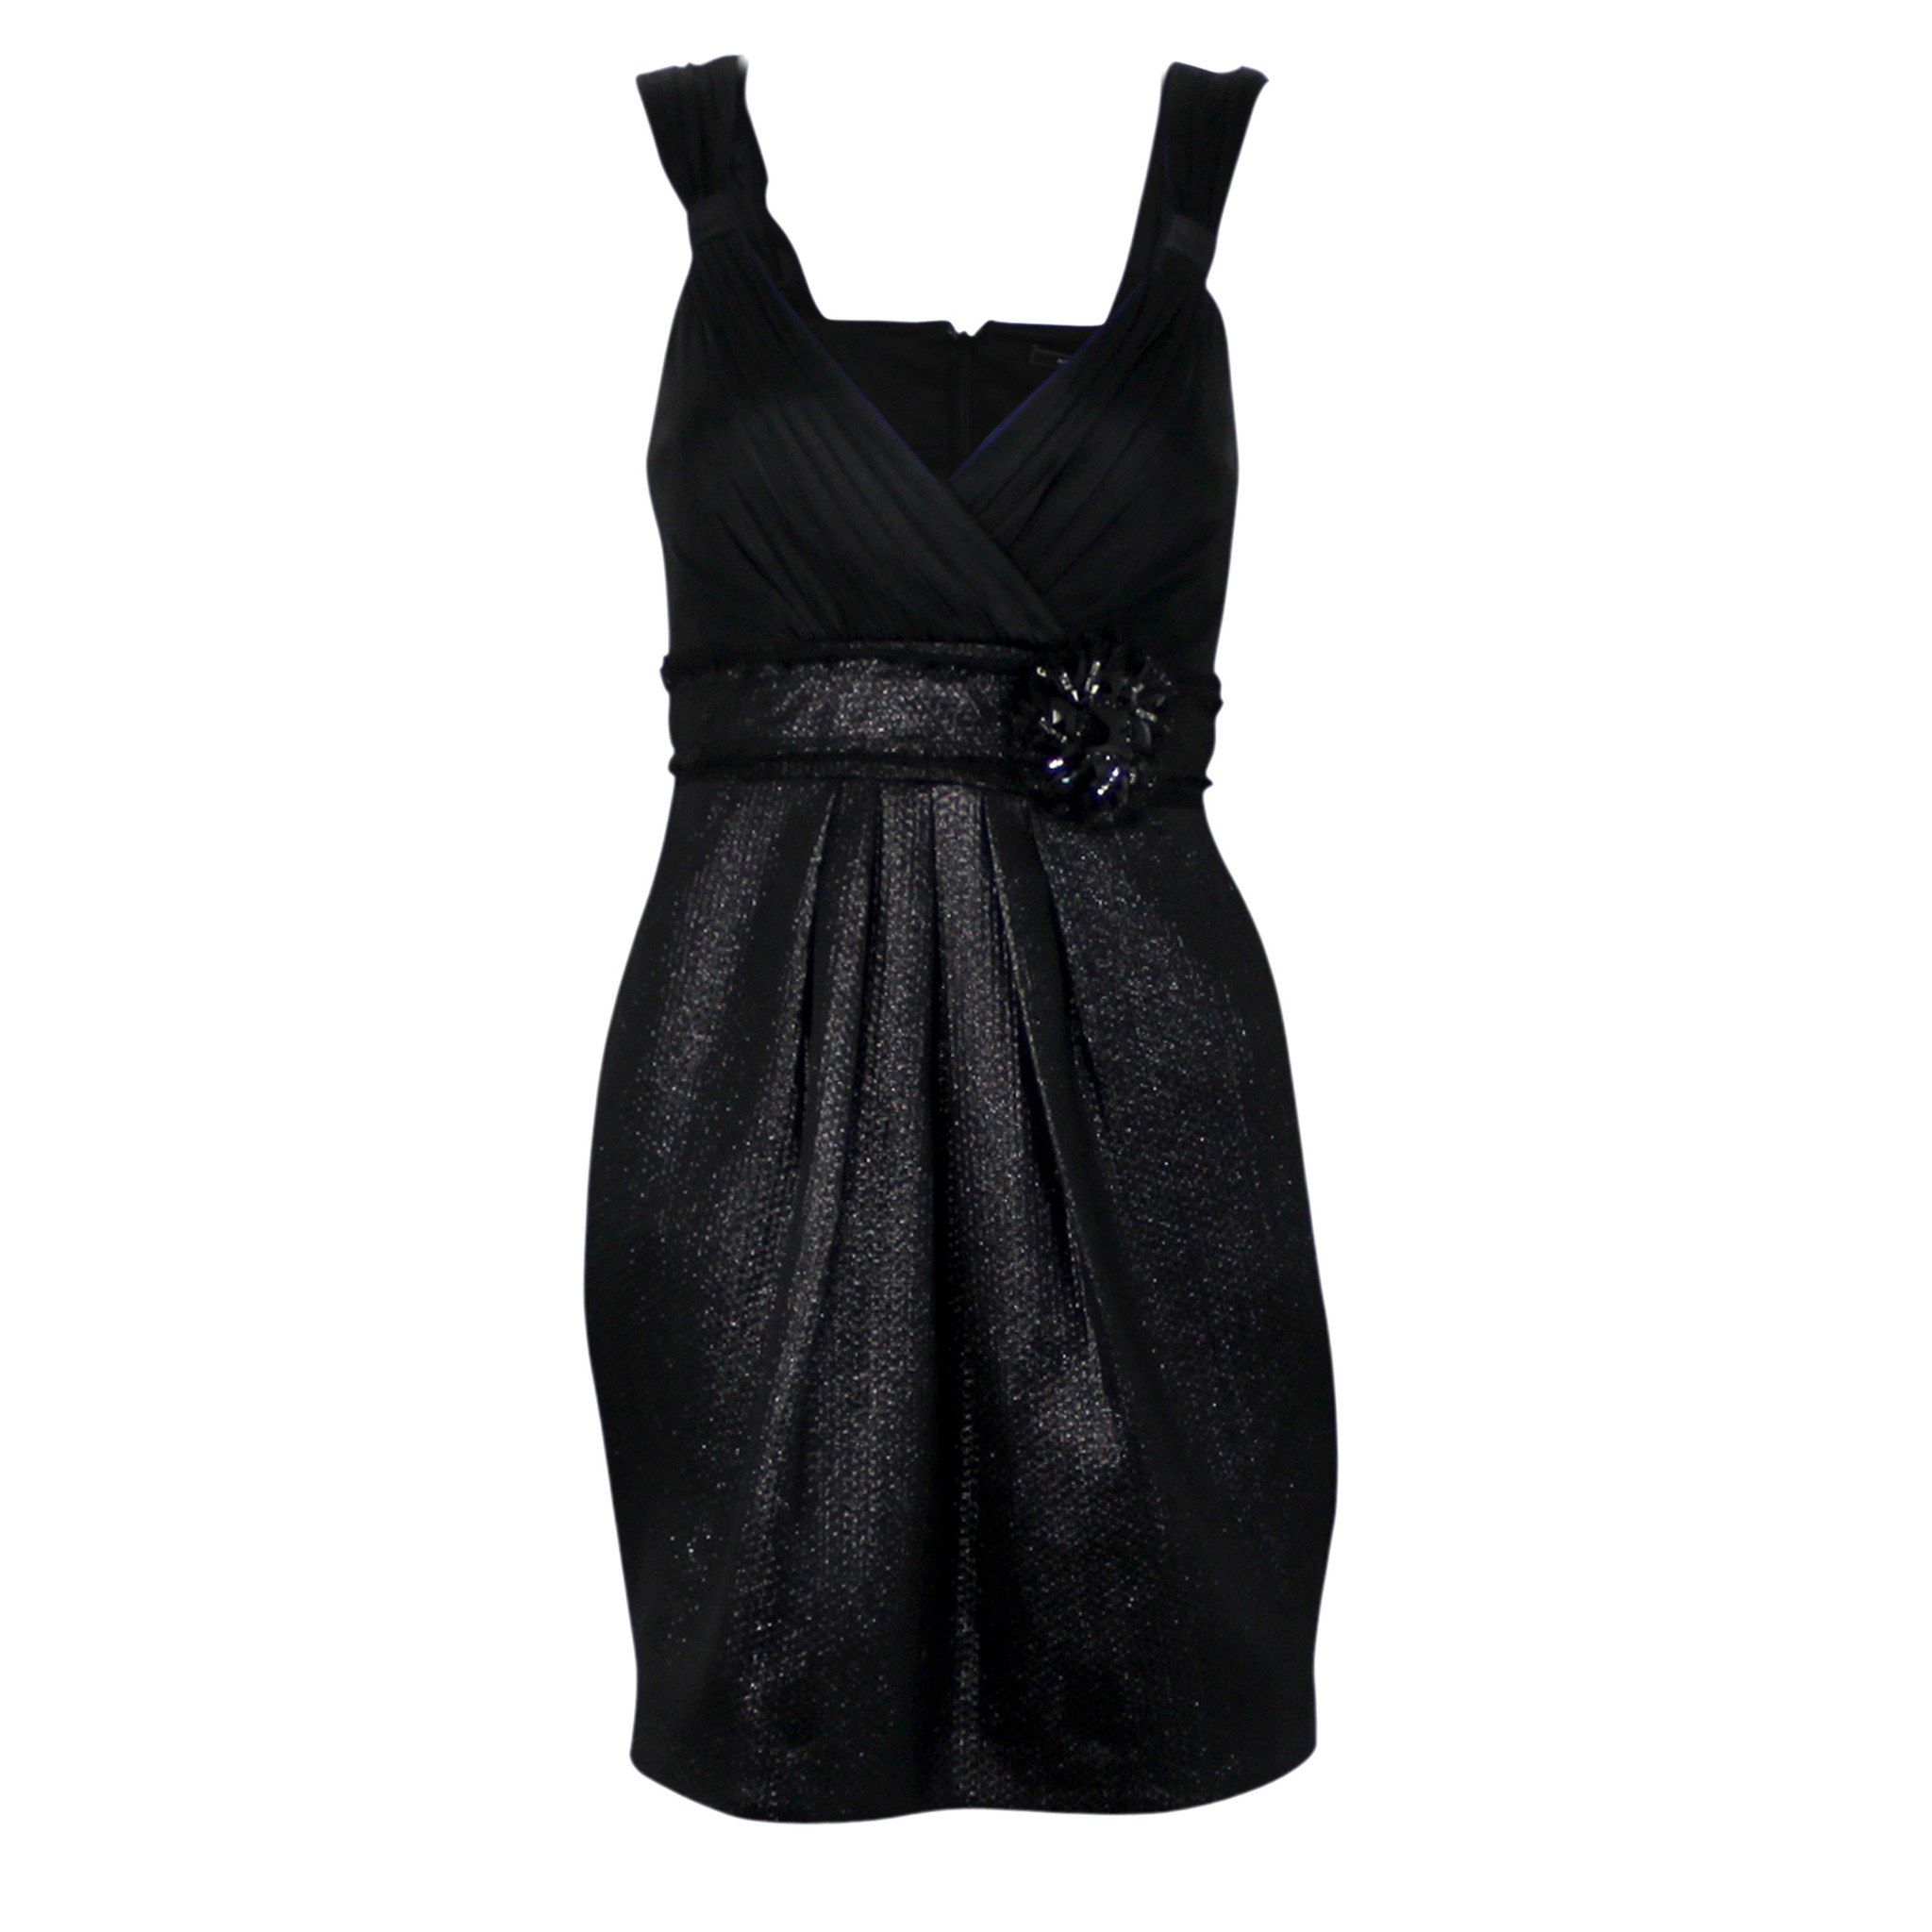 A V-Neck cocktail dress featuring a jersey pleated bust, a jaquard skirt with fringe detail and applique at waist, a pleated skirt, slant hip pockets, and a hidden back zipper. Condition: New without